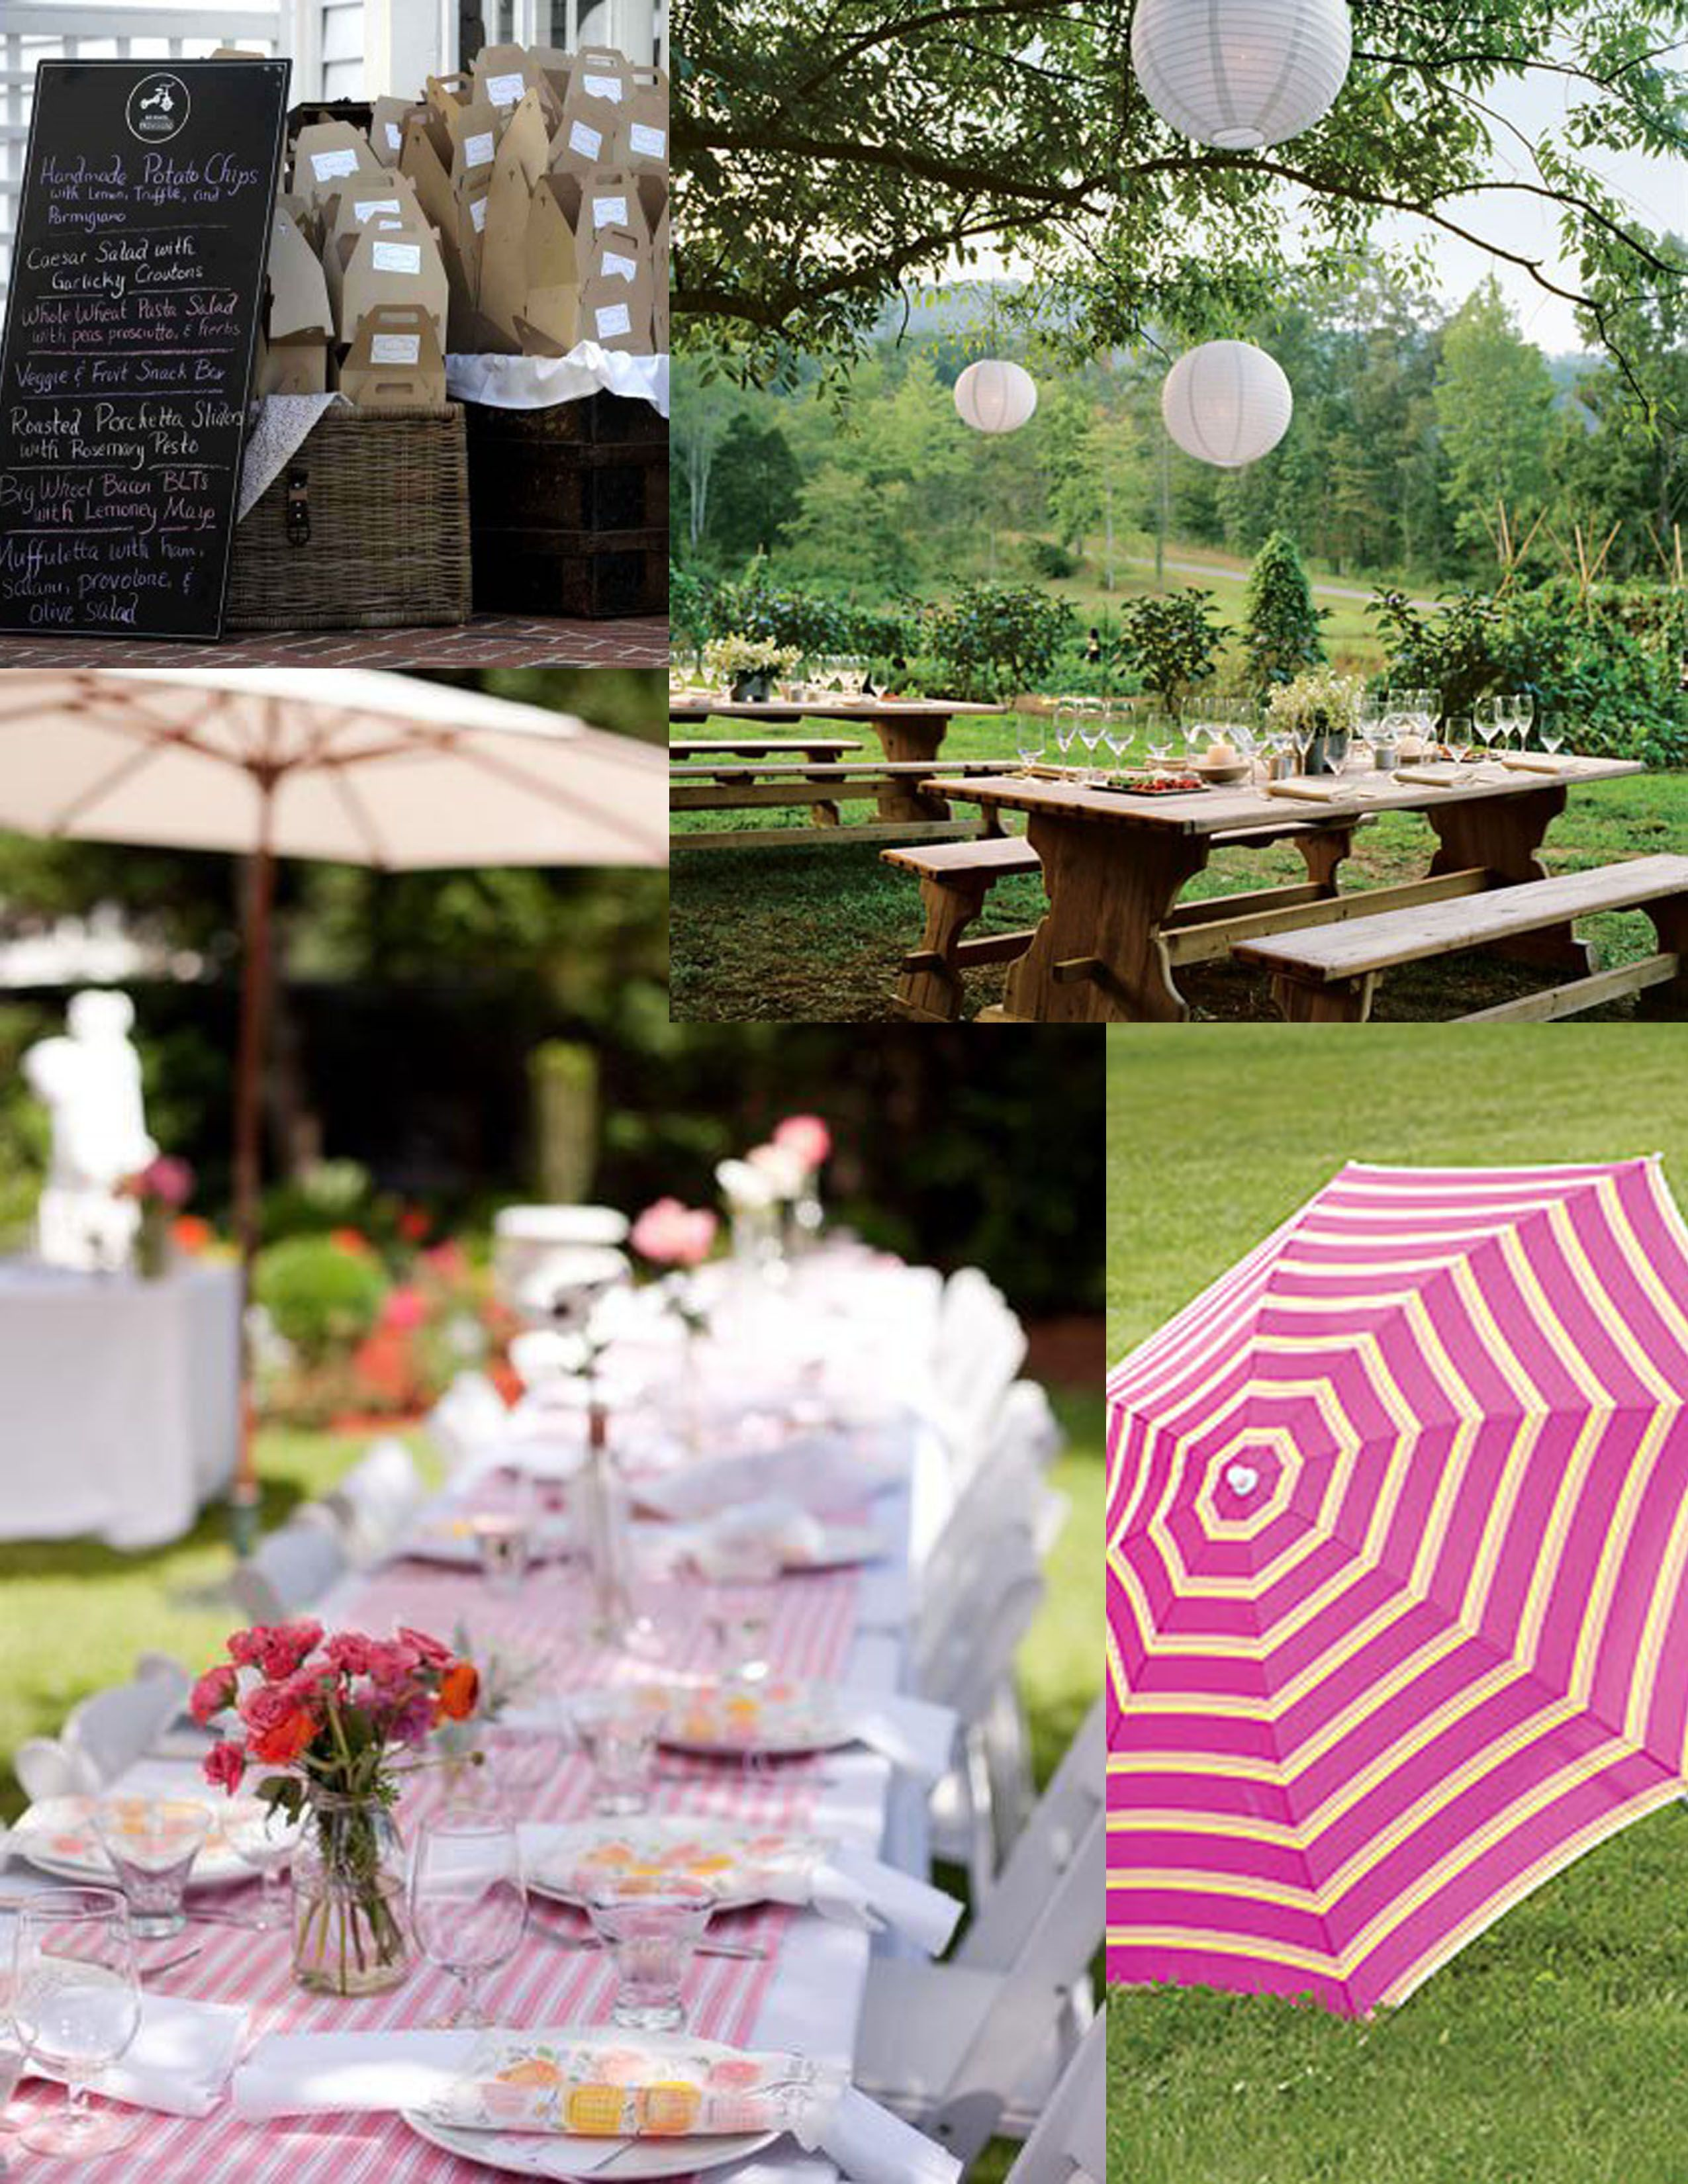 images of outdoor picnics | My thoughts are... Cancel reply